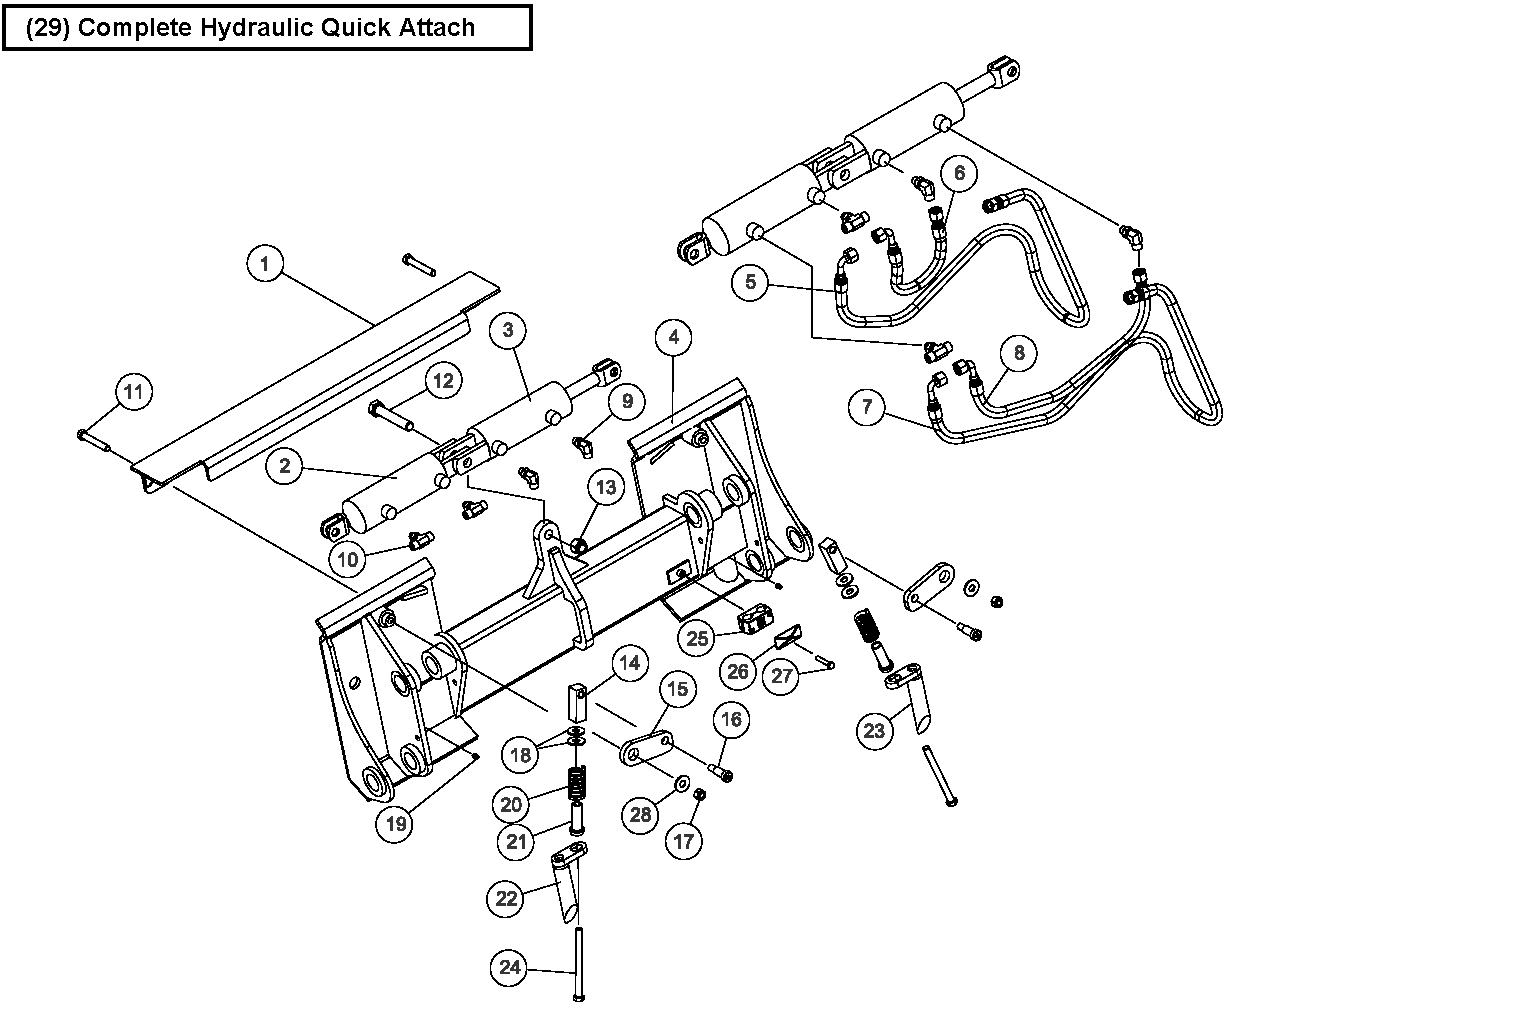 Diagram 18-A Hydraulic Quick Attach Assembly